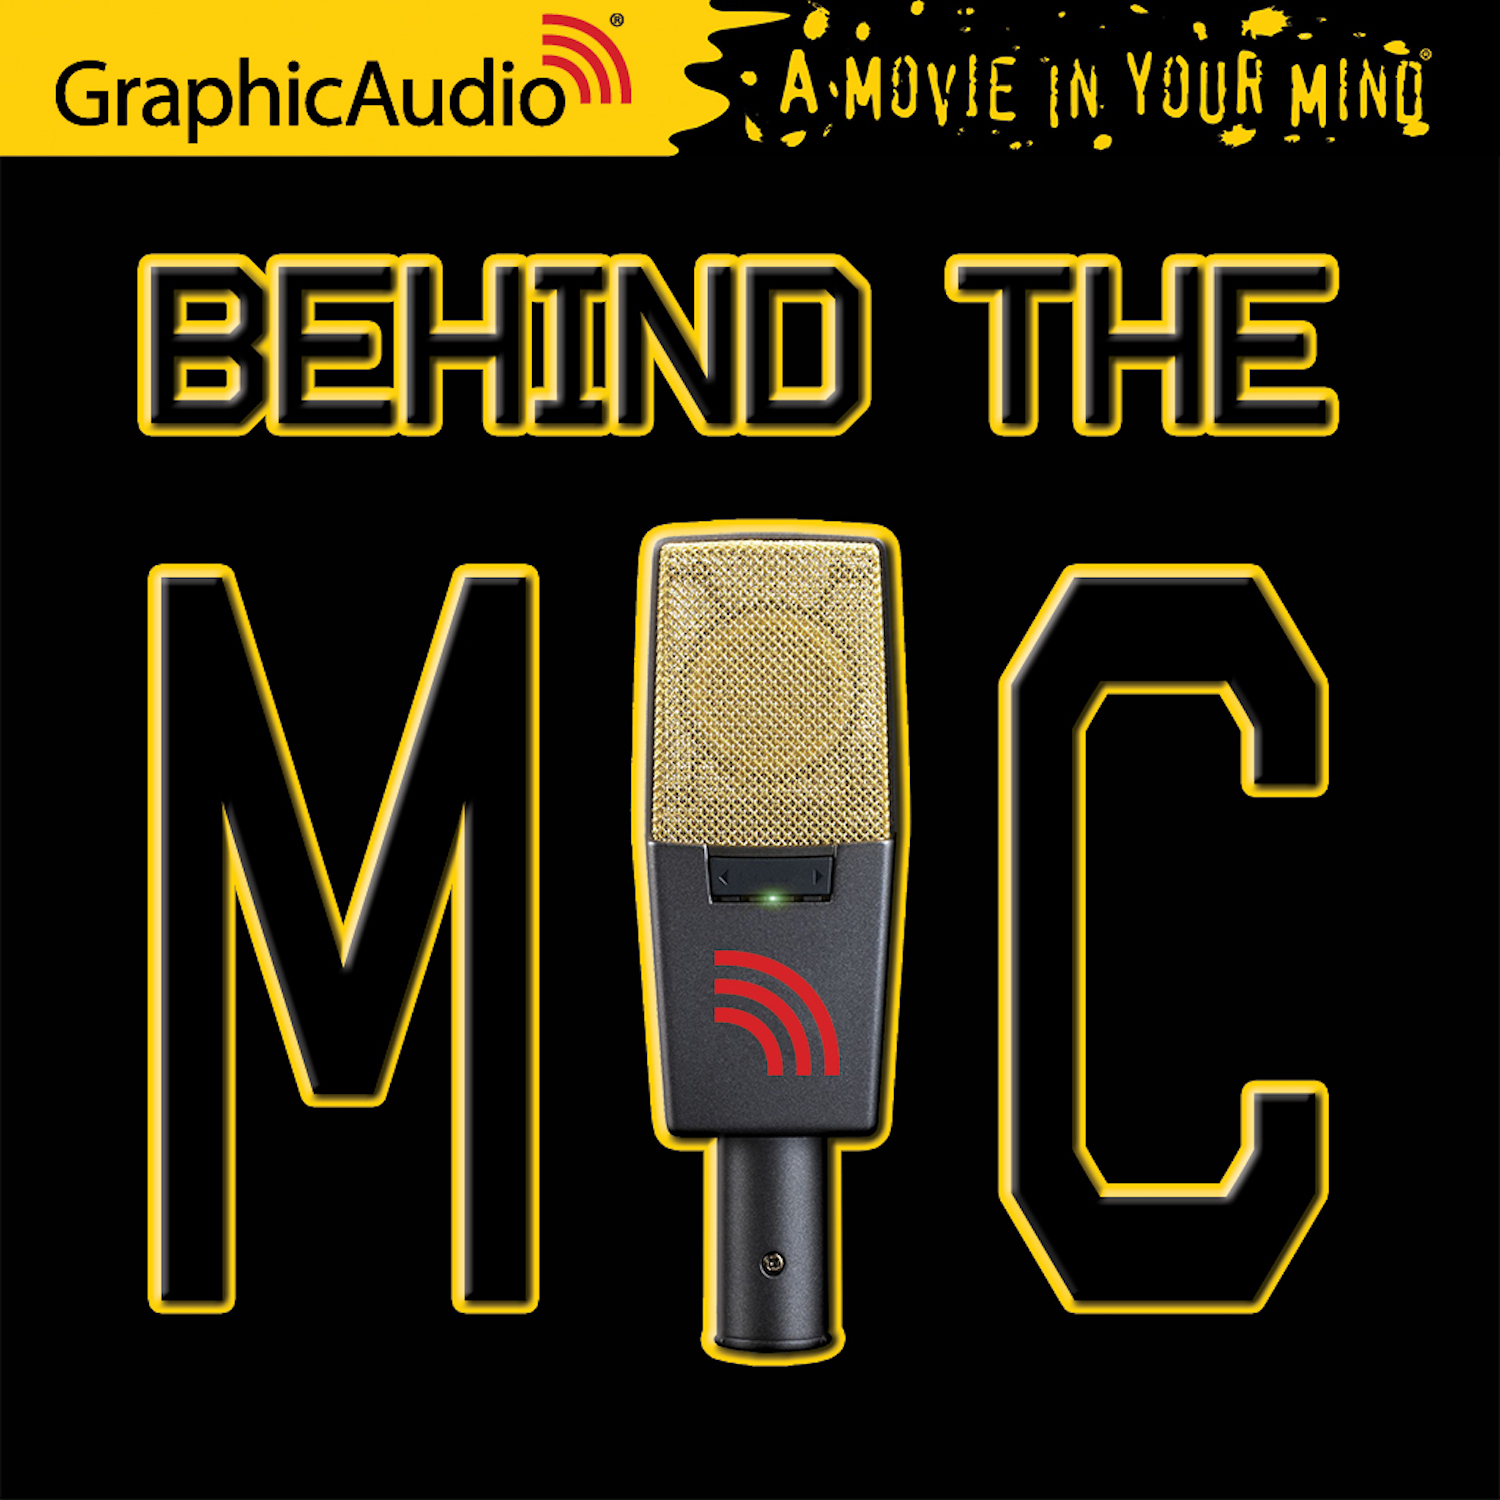 GraphicAudio - Behind The Mic